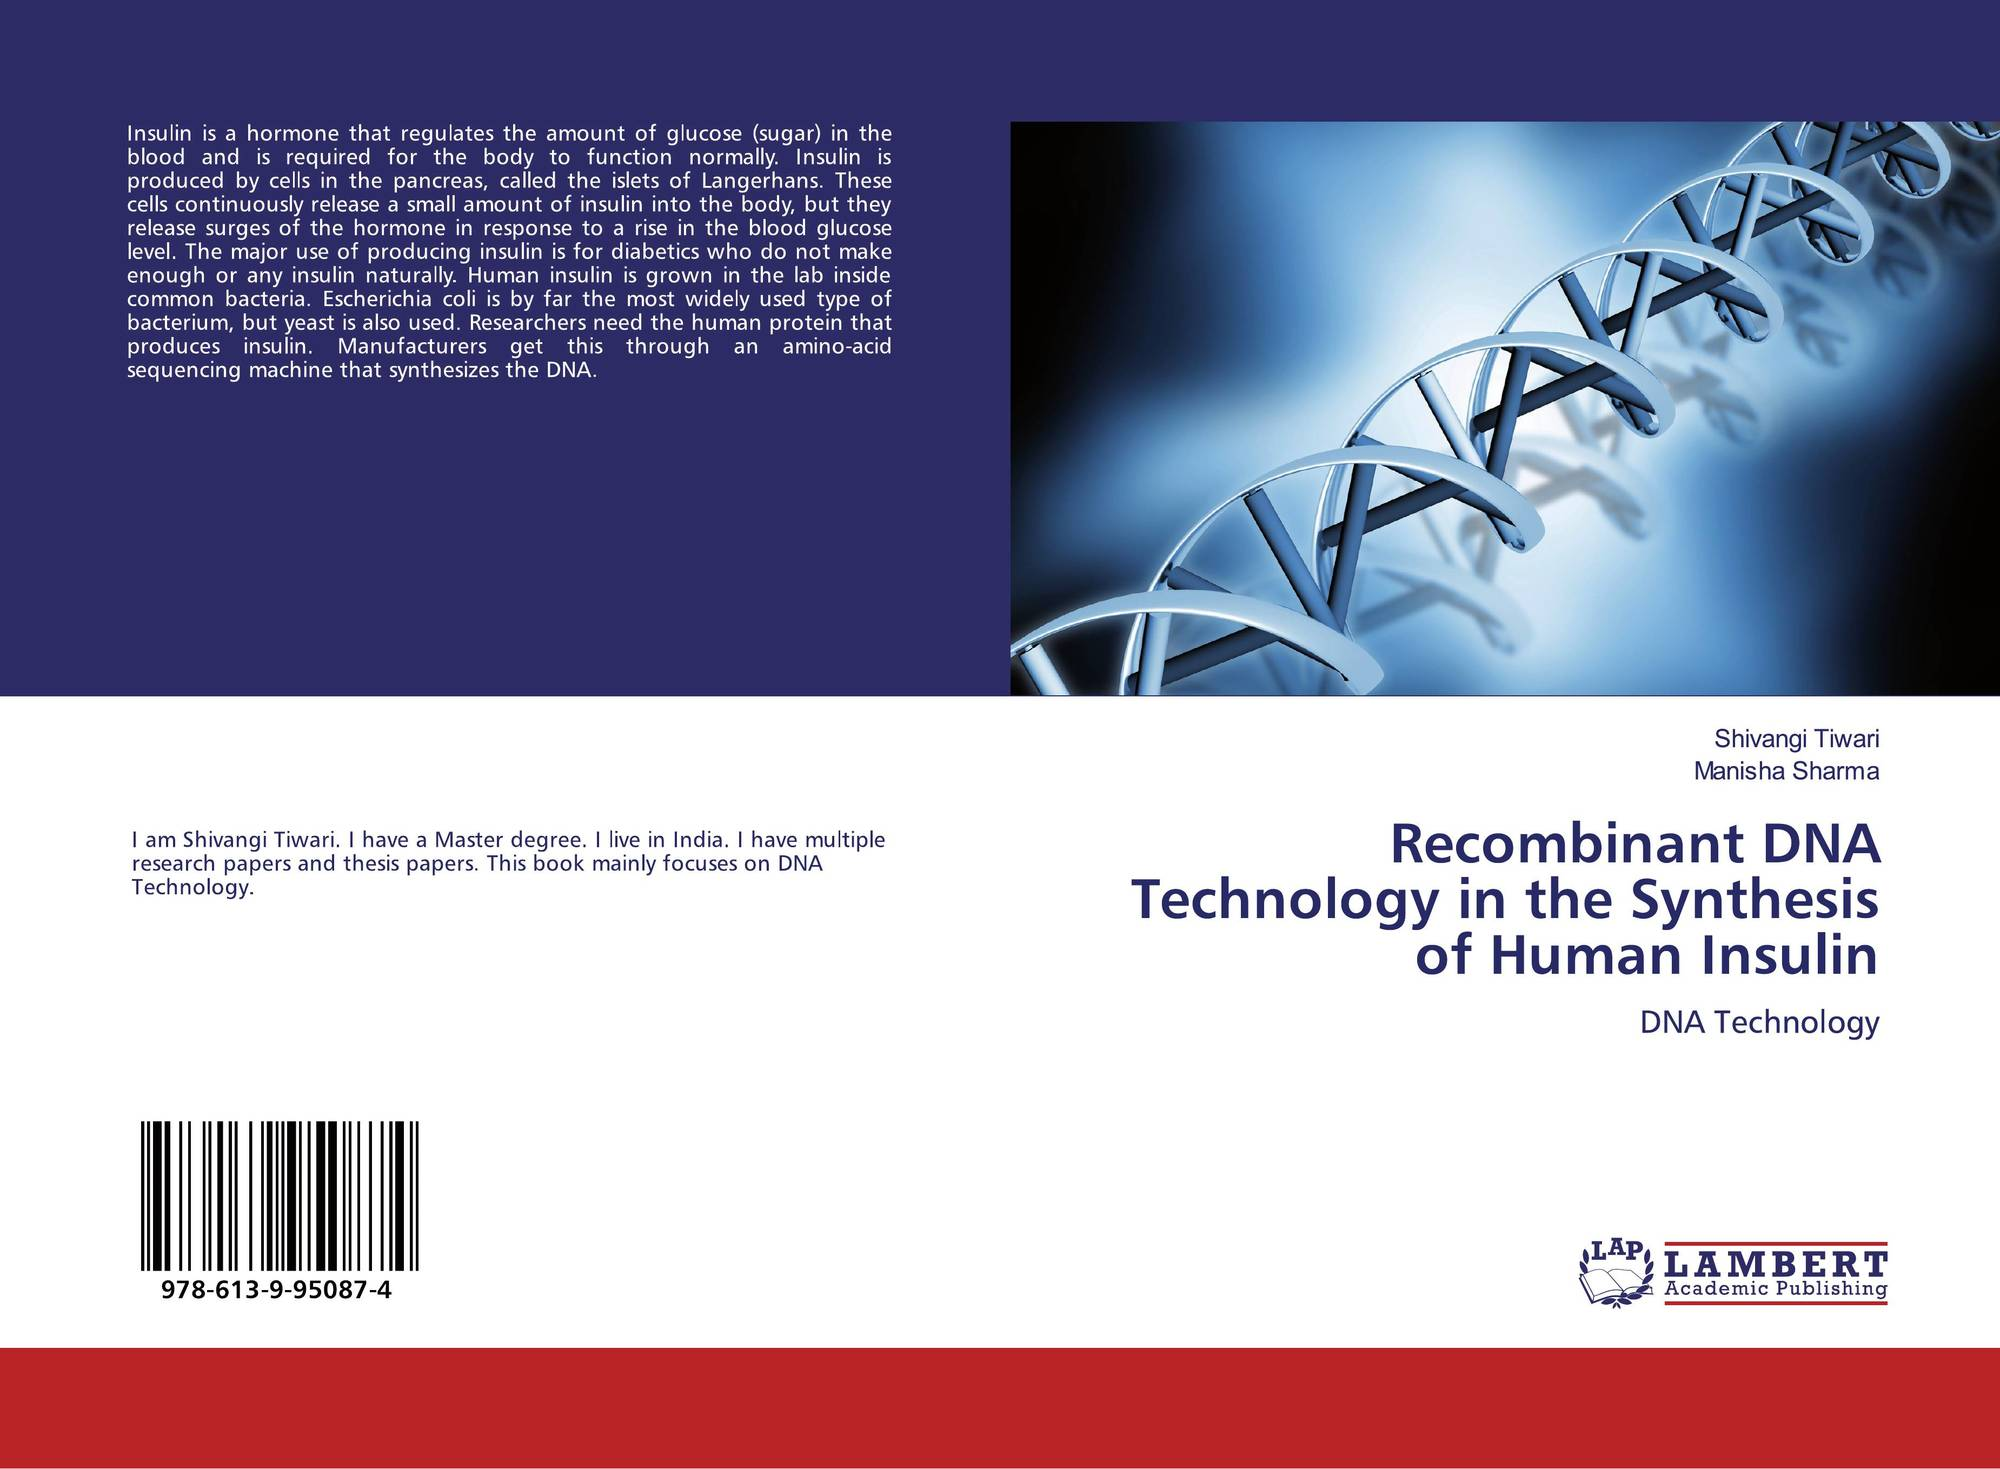 research paper on recombinant dna technology